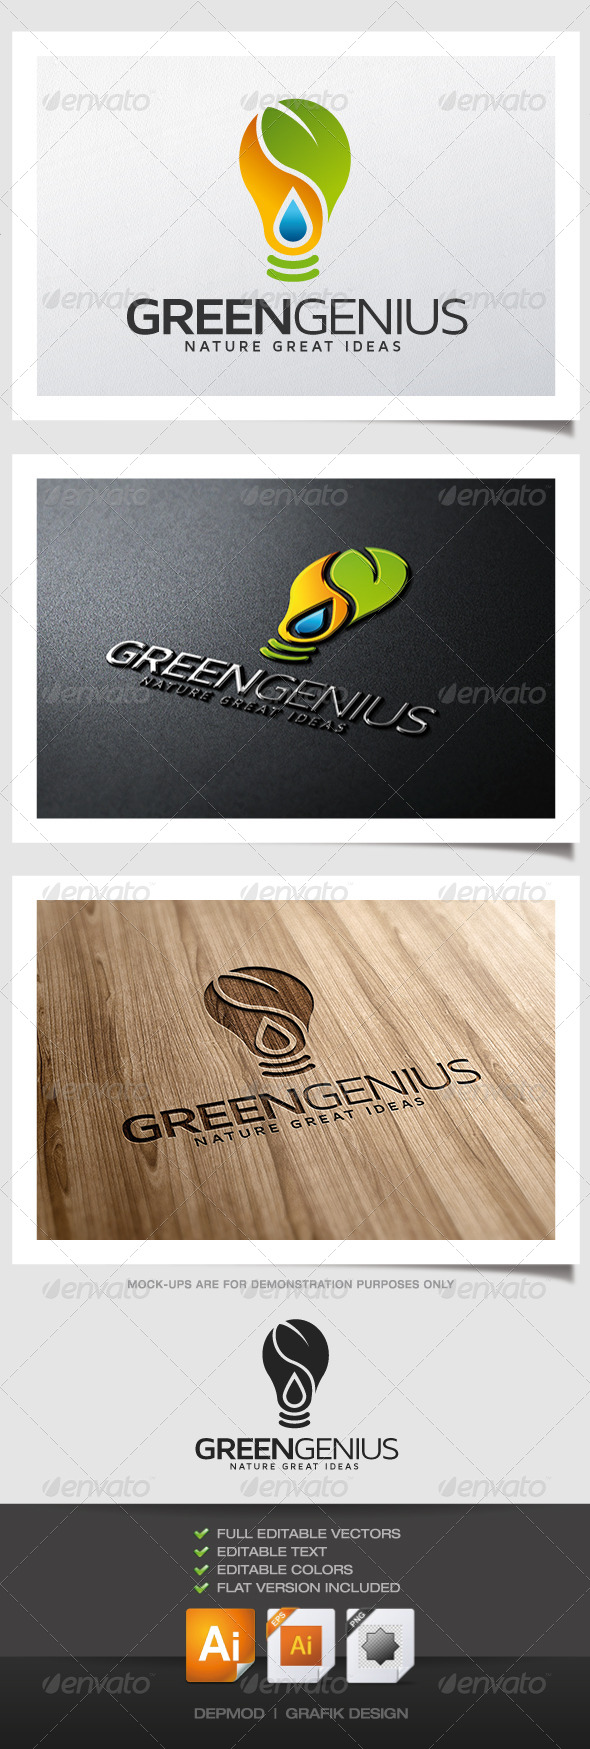 GraphicRiver Green Genius Logo 5185003